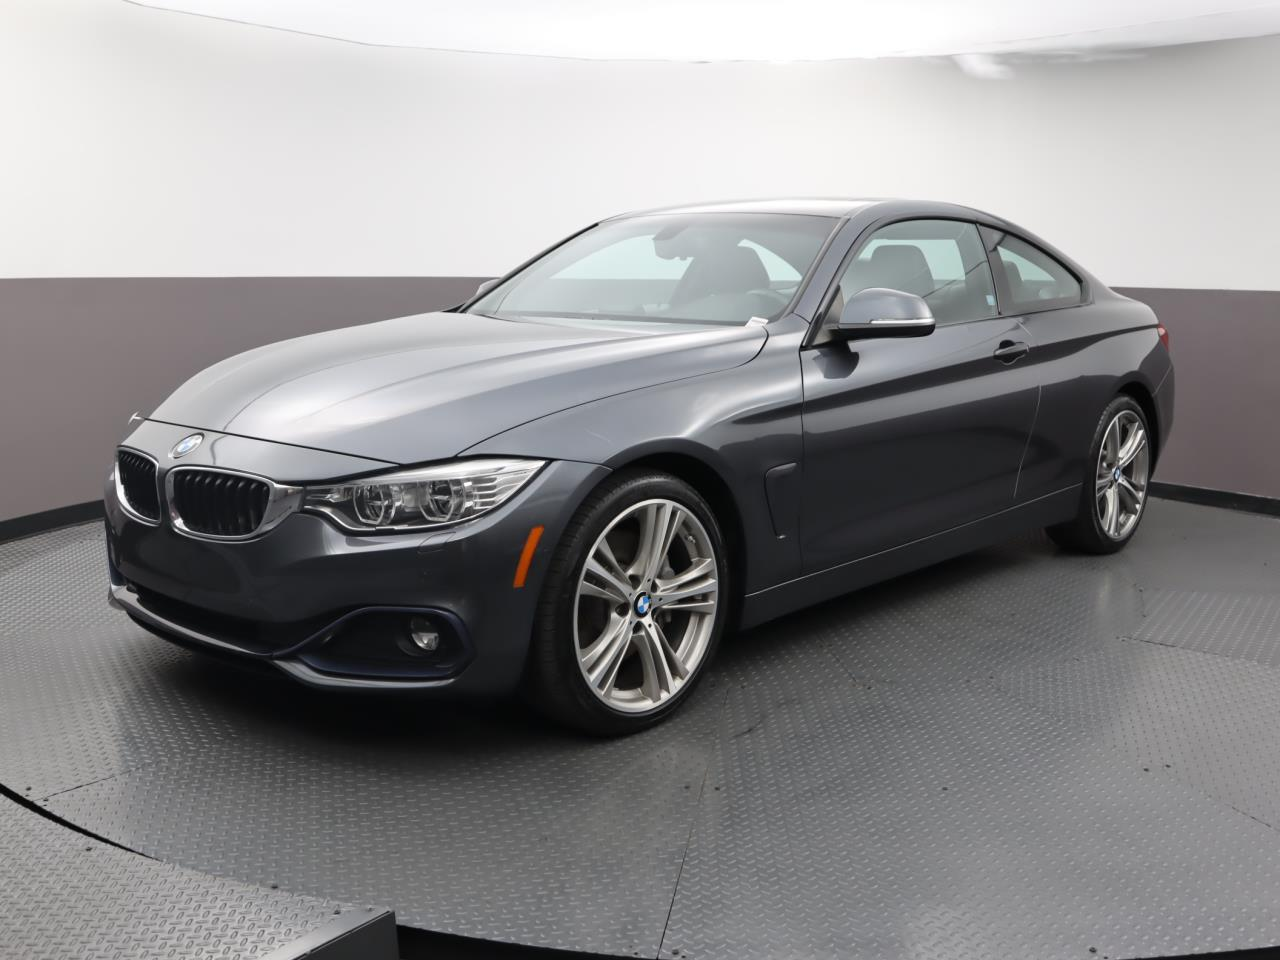 Used BMW 4-SERIES 2017 WEST PALM 440I XDRIVE